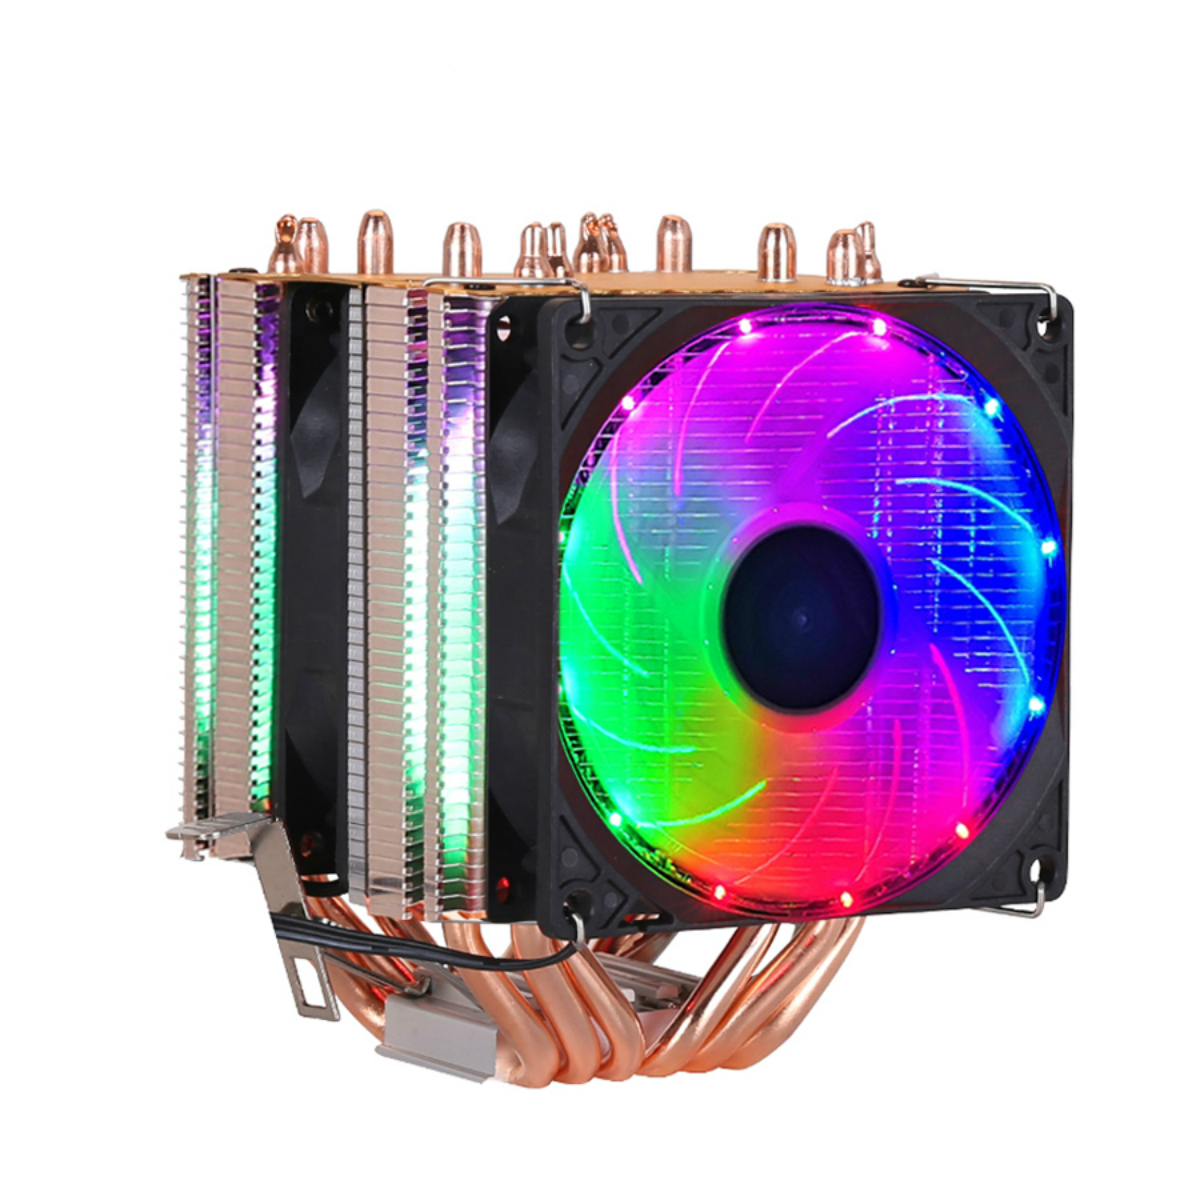 CPU Cooler Heatsink Kit High Quality 6 Heat-pipe Dual-tower Cooling 9cm RGB Fan Support 3Fans 3PIN4PIN Fan For Intel And For AMD